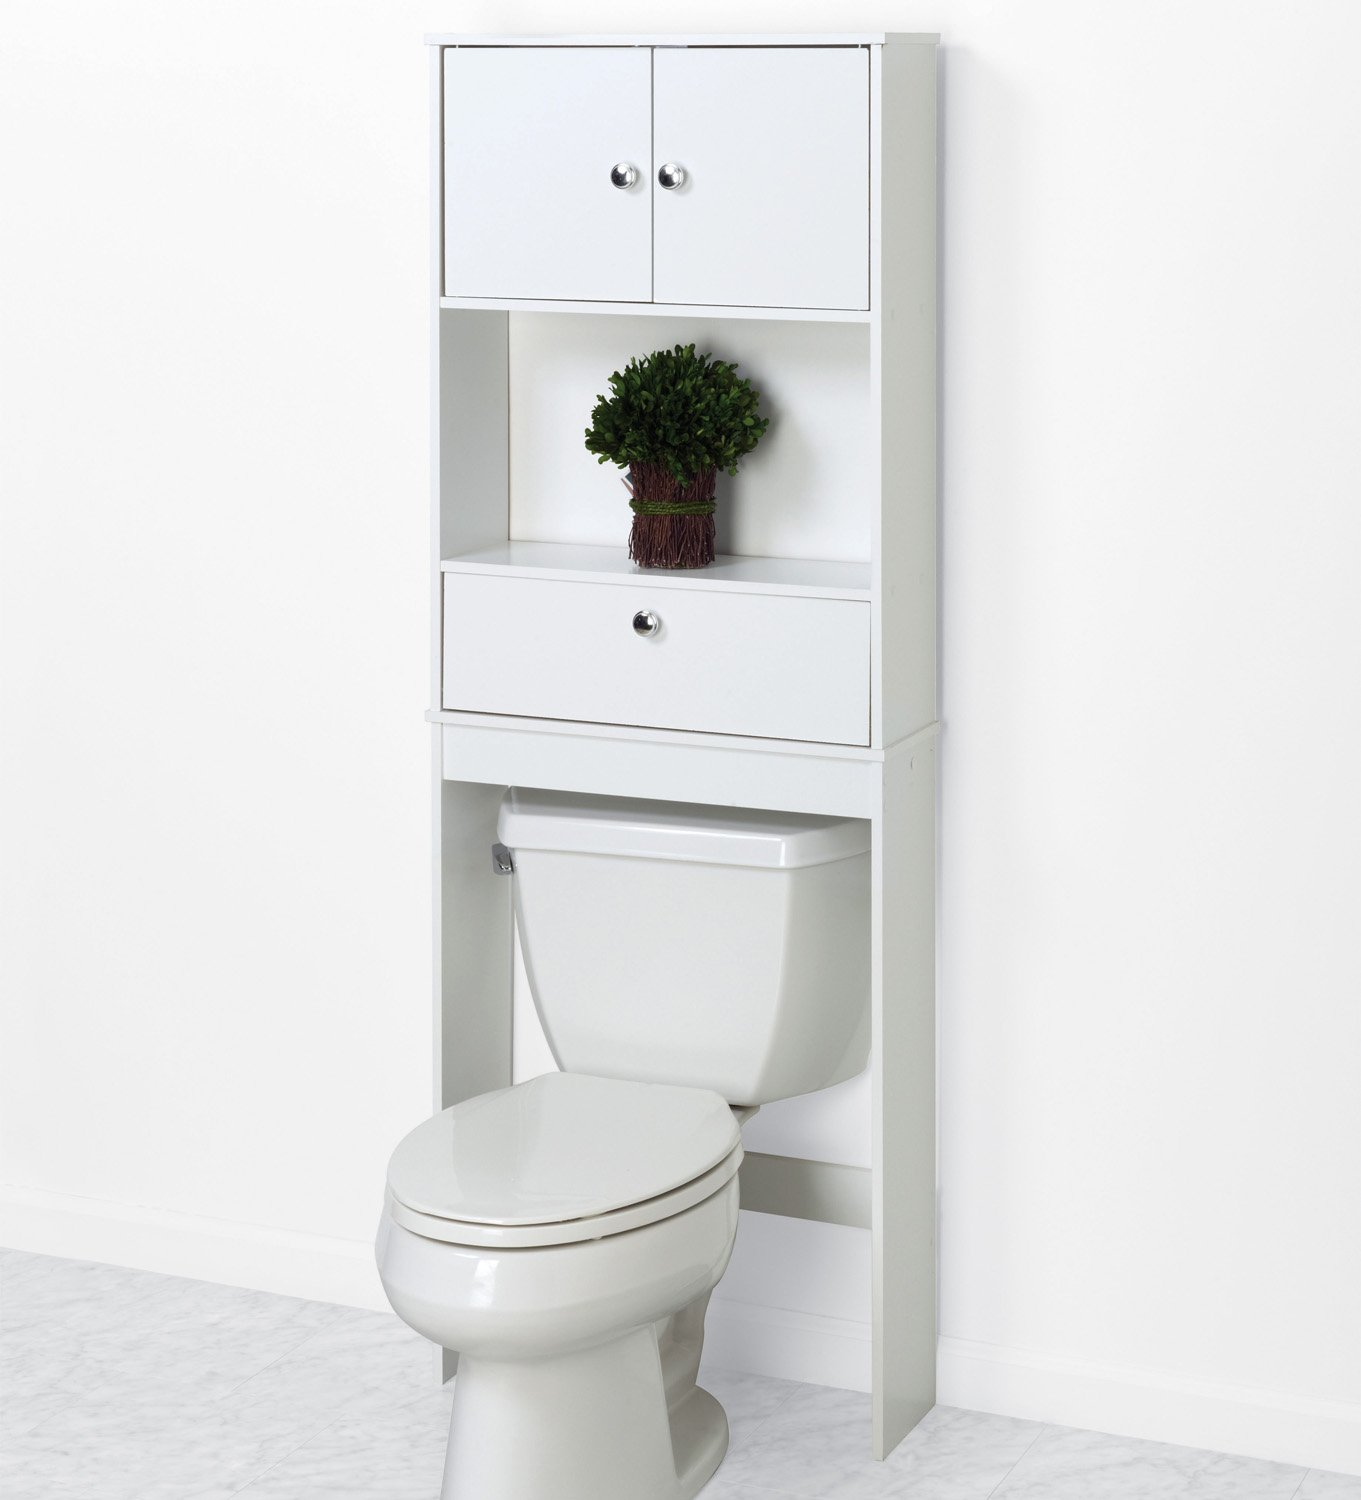 bathroom over toilet drop door shelf cabinet bath space saver storage rack white ebay. Black Bedroom Furniture Sets. Home Design Ideas